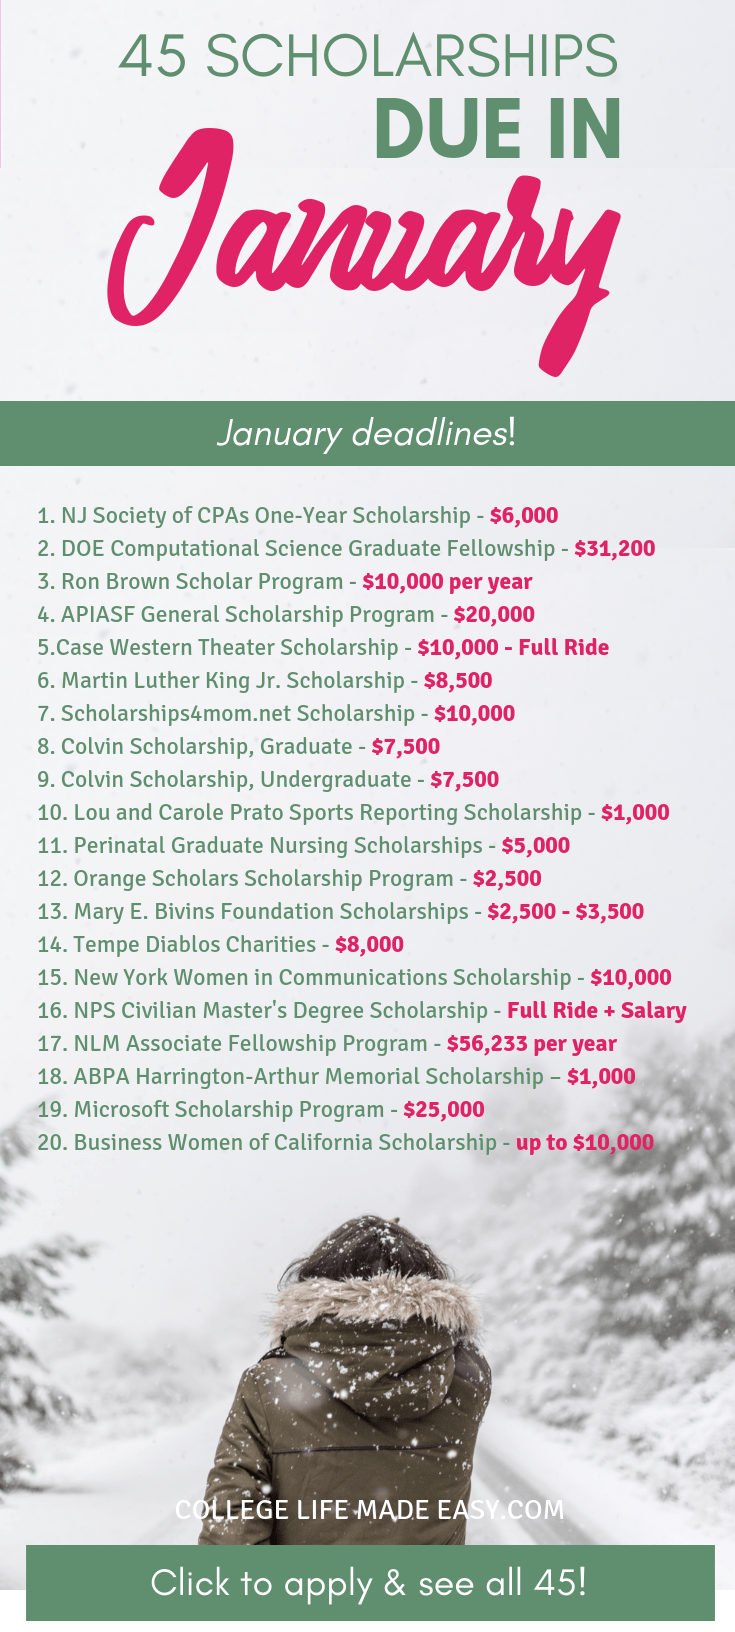 College scholarships that all have January deadlines in 2019! January Scholarships